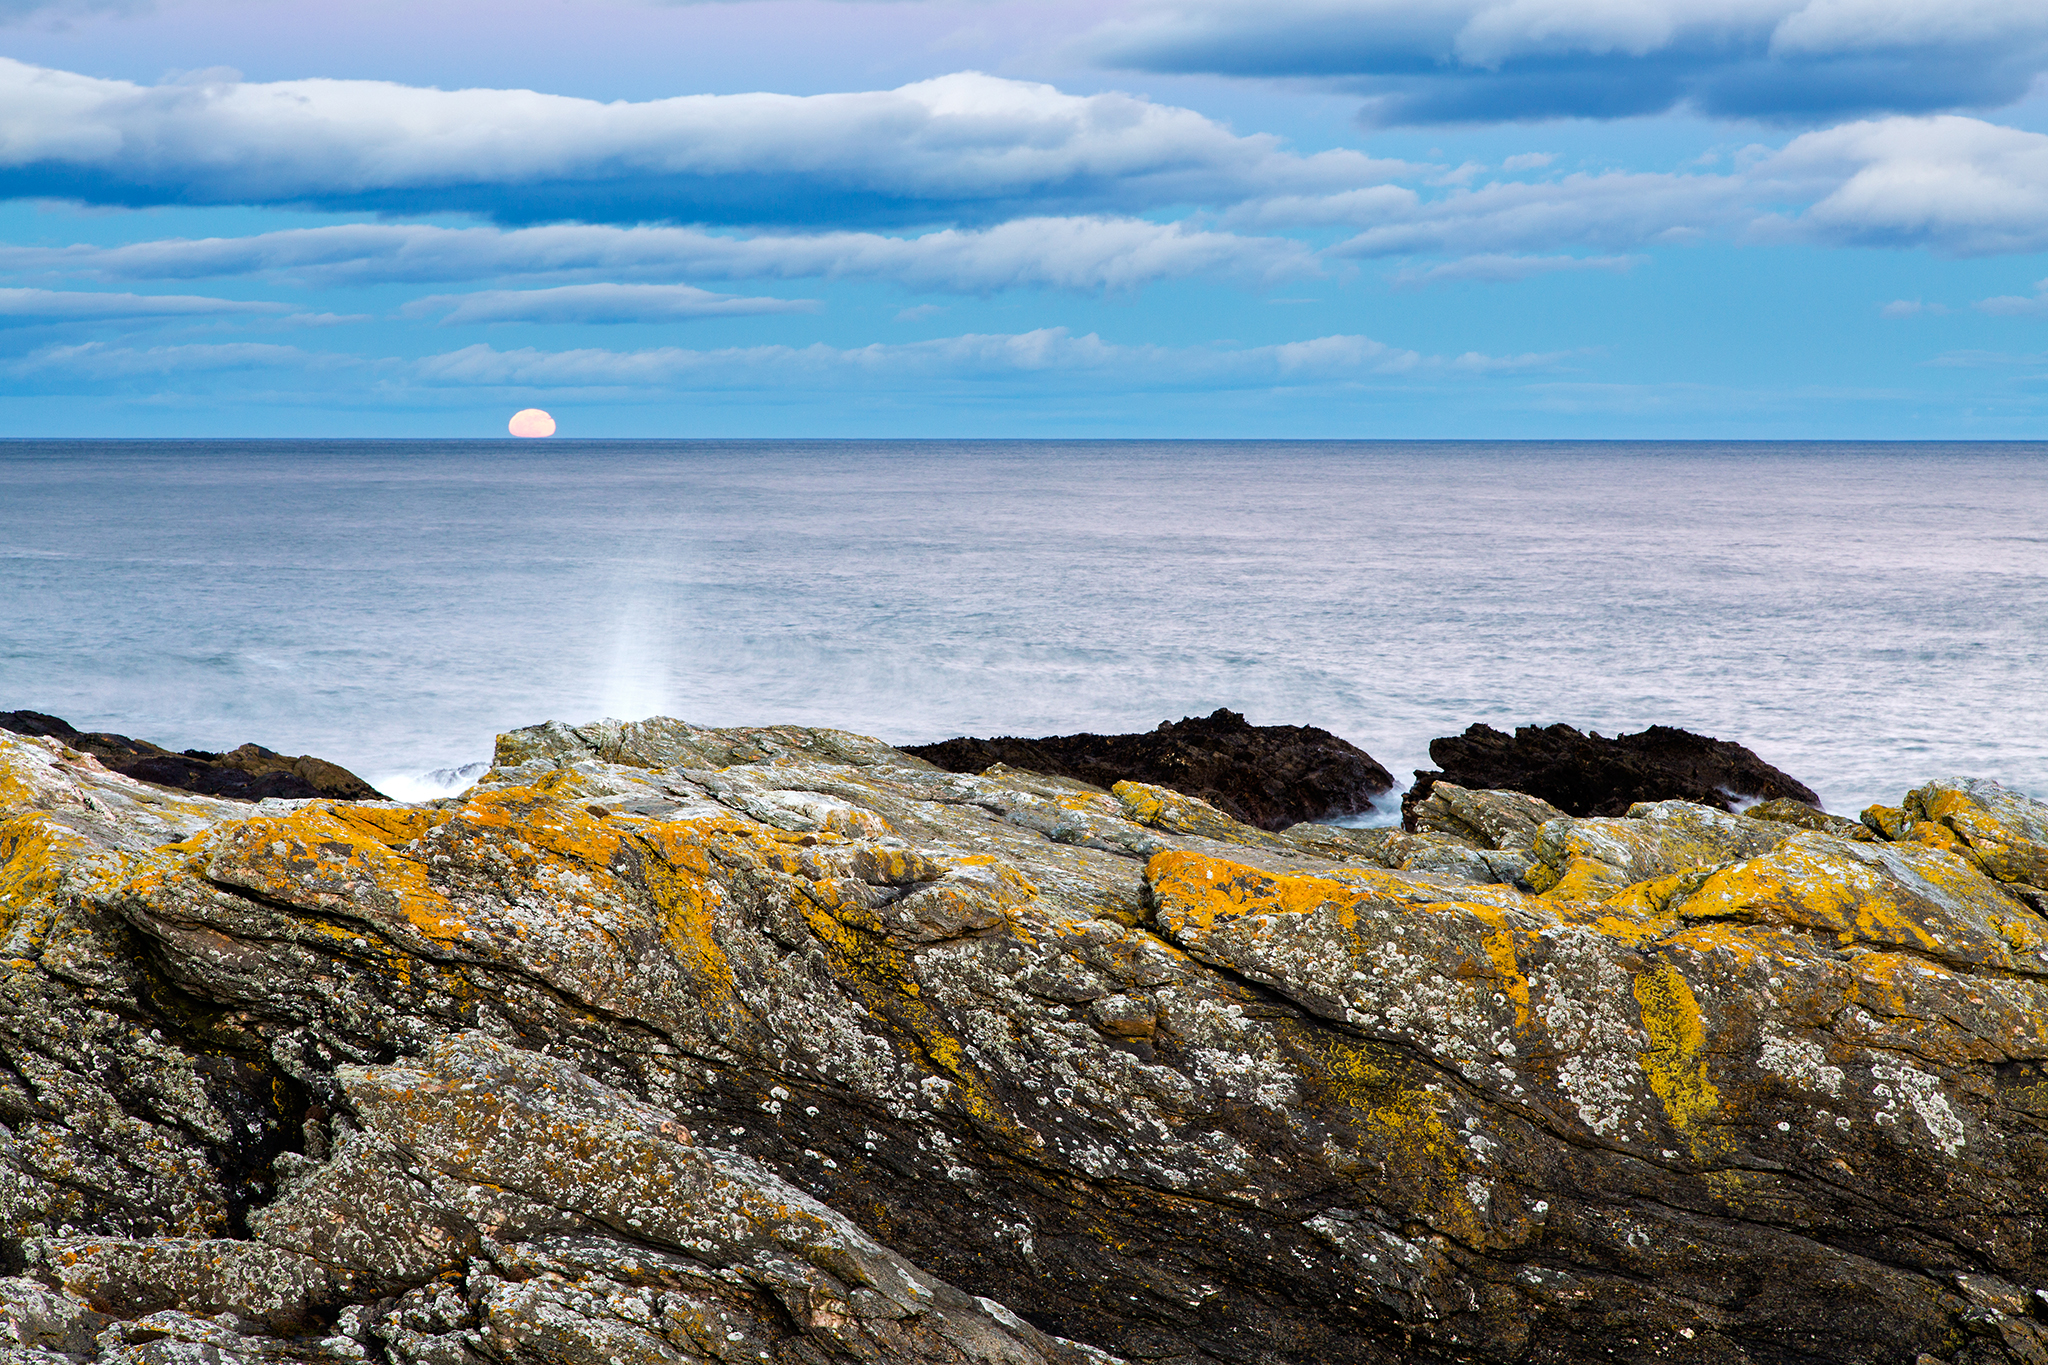 Moon rising after sunset at Portlethen, near Aberdeen, Scotland.